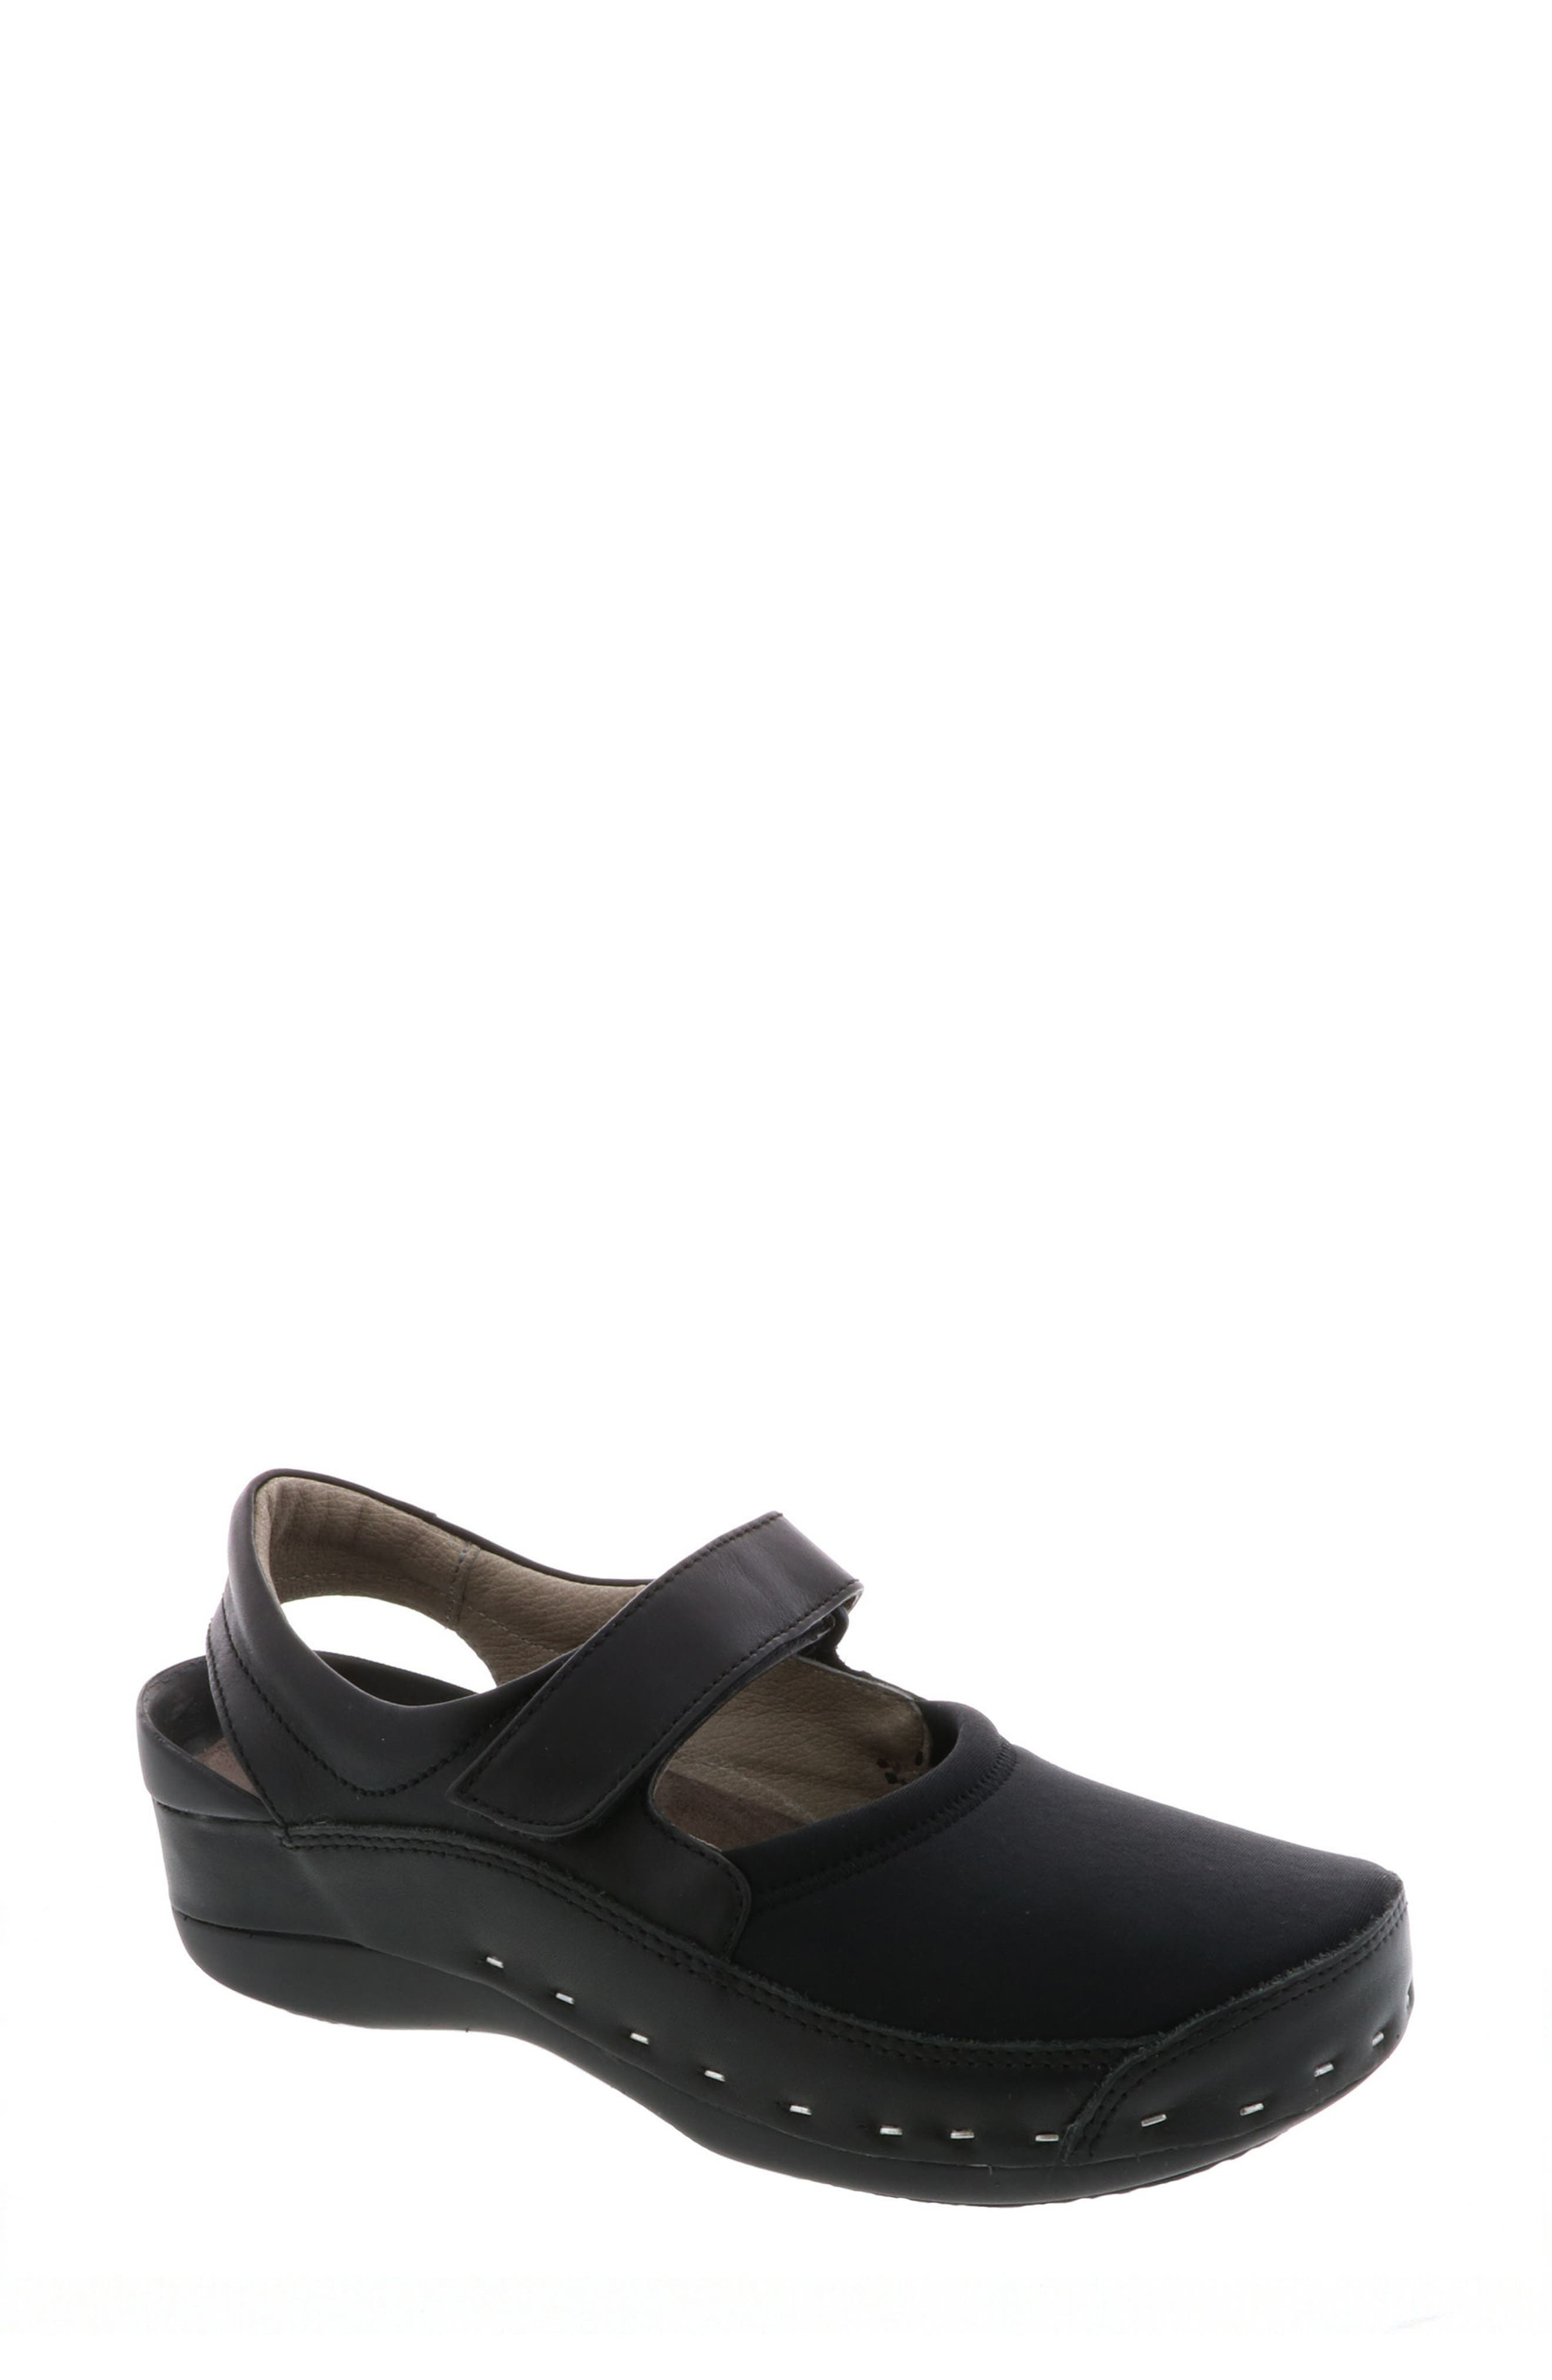 Wolky Ankle Strap Clog, Black